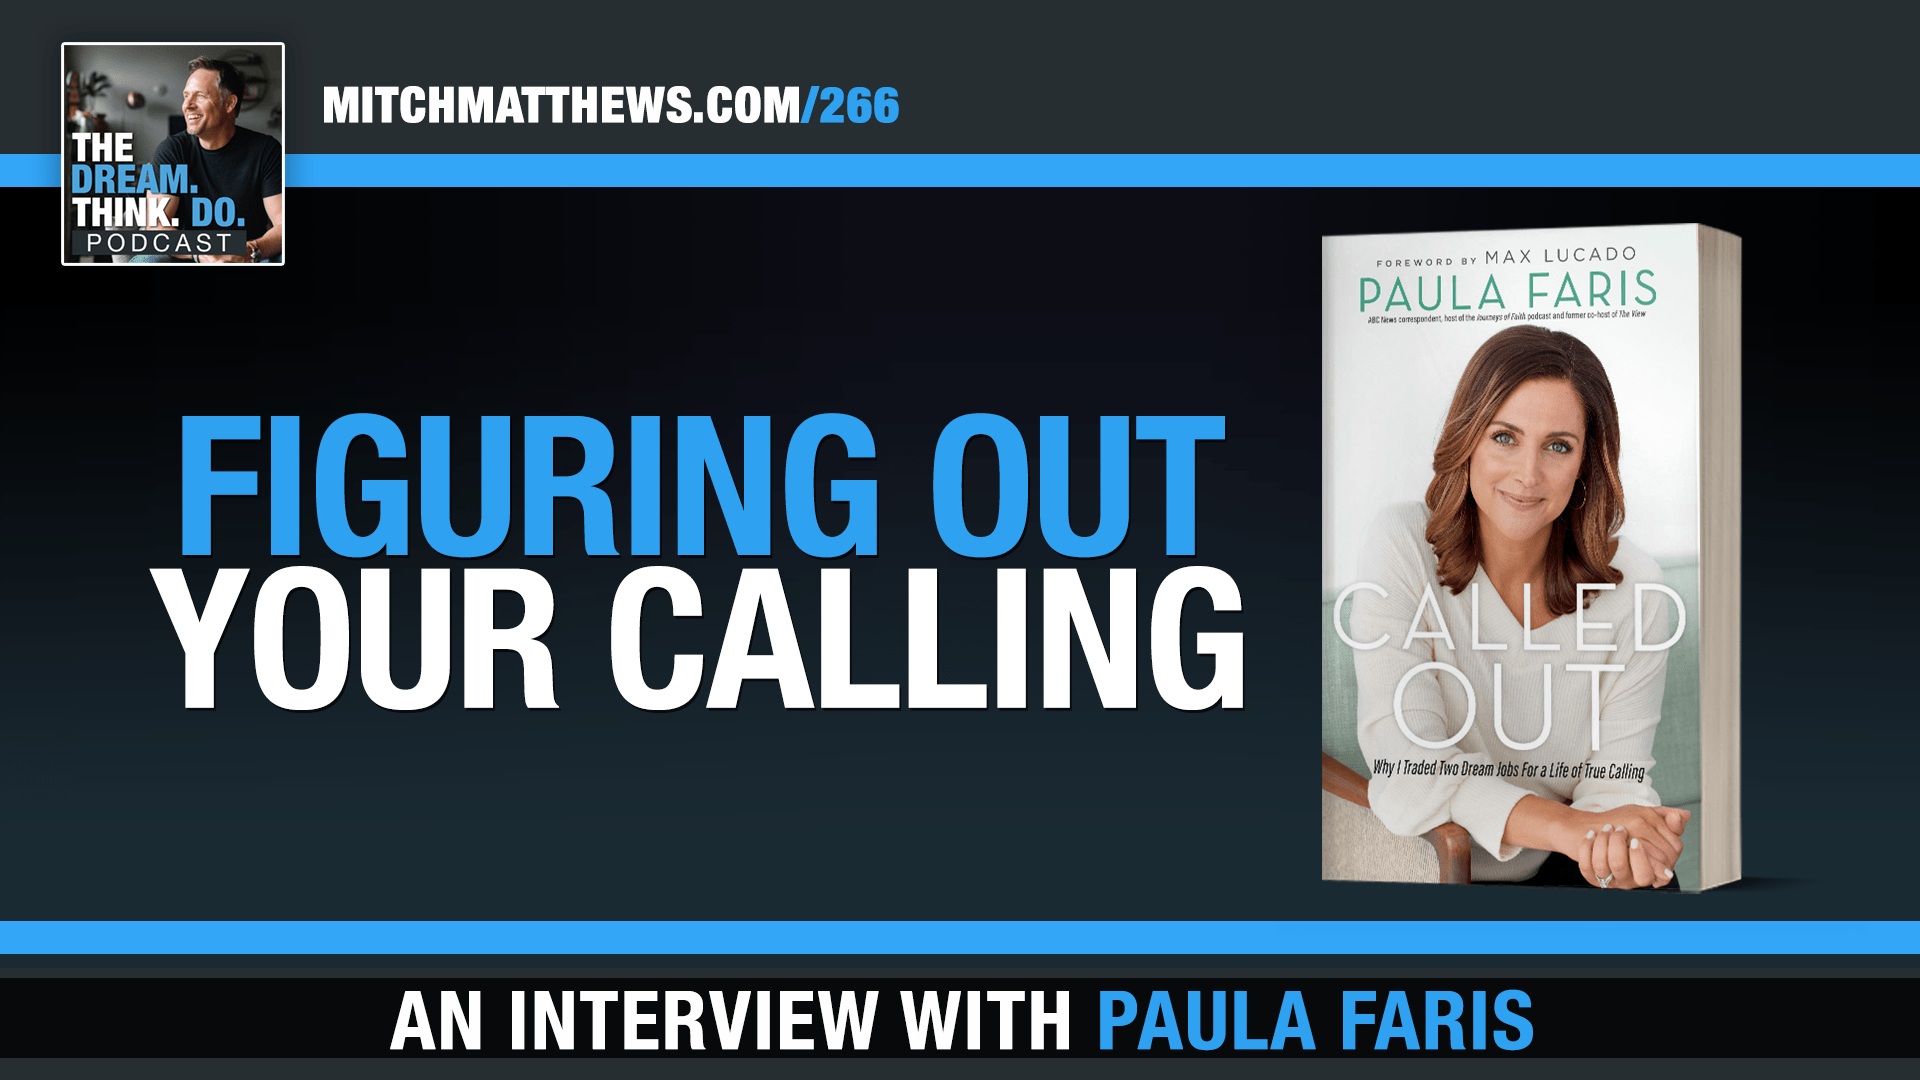 Paula Faris Interview with Mitch Matthews